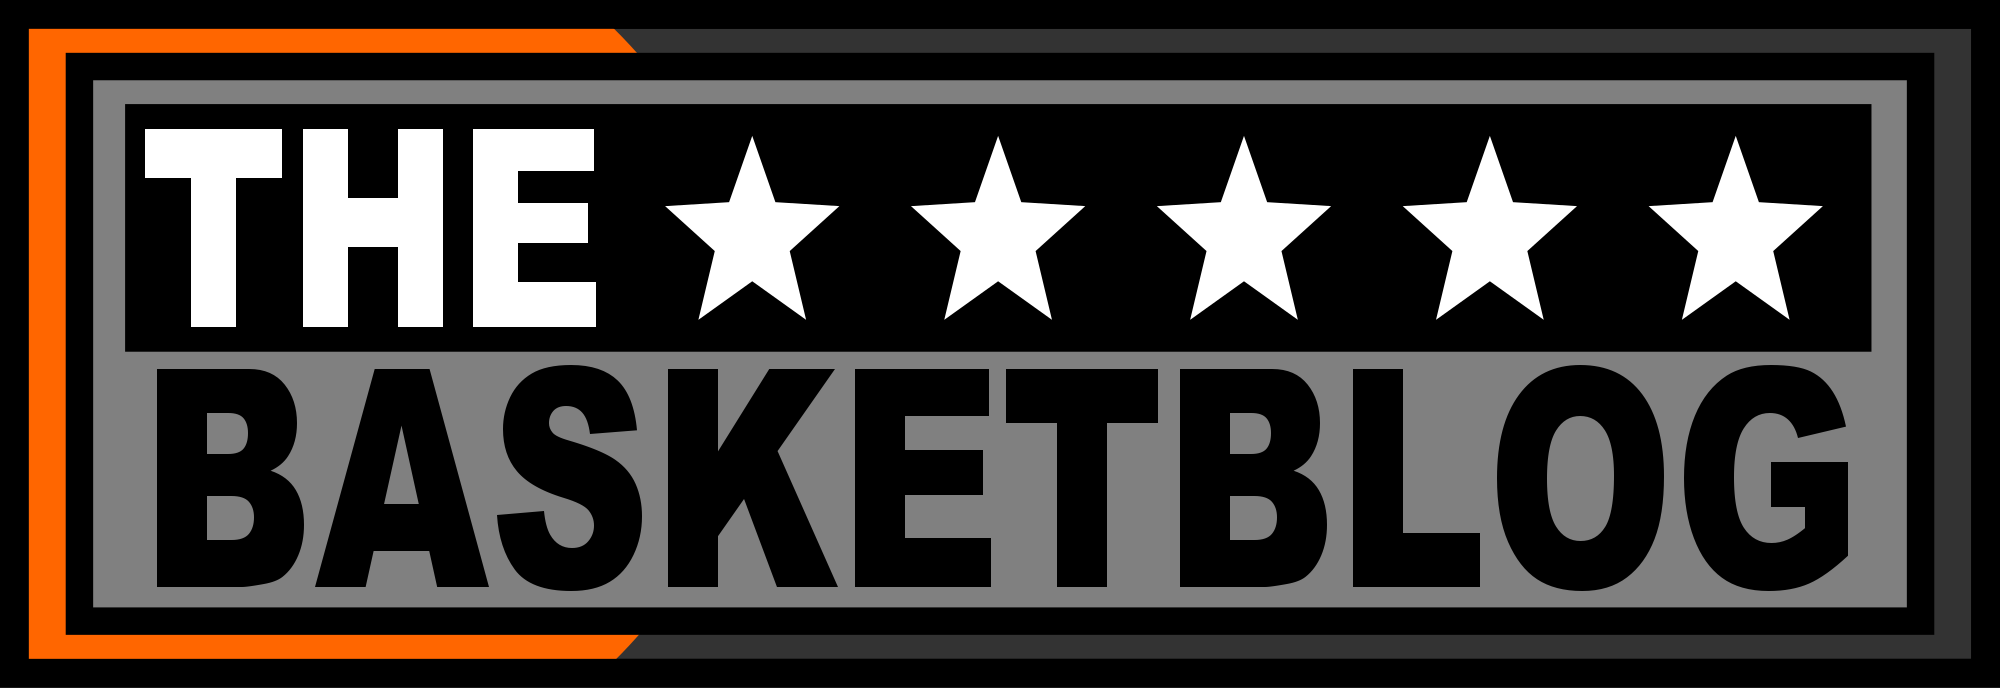 The Basketblog